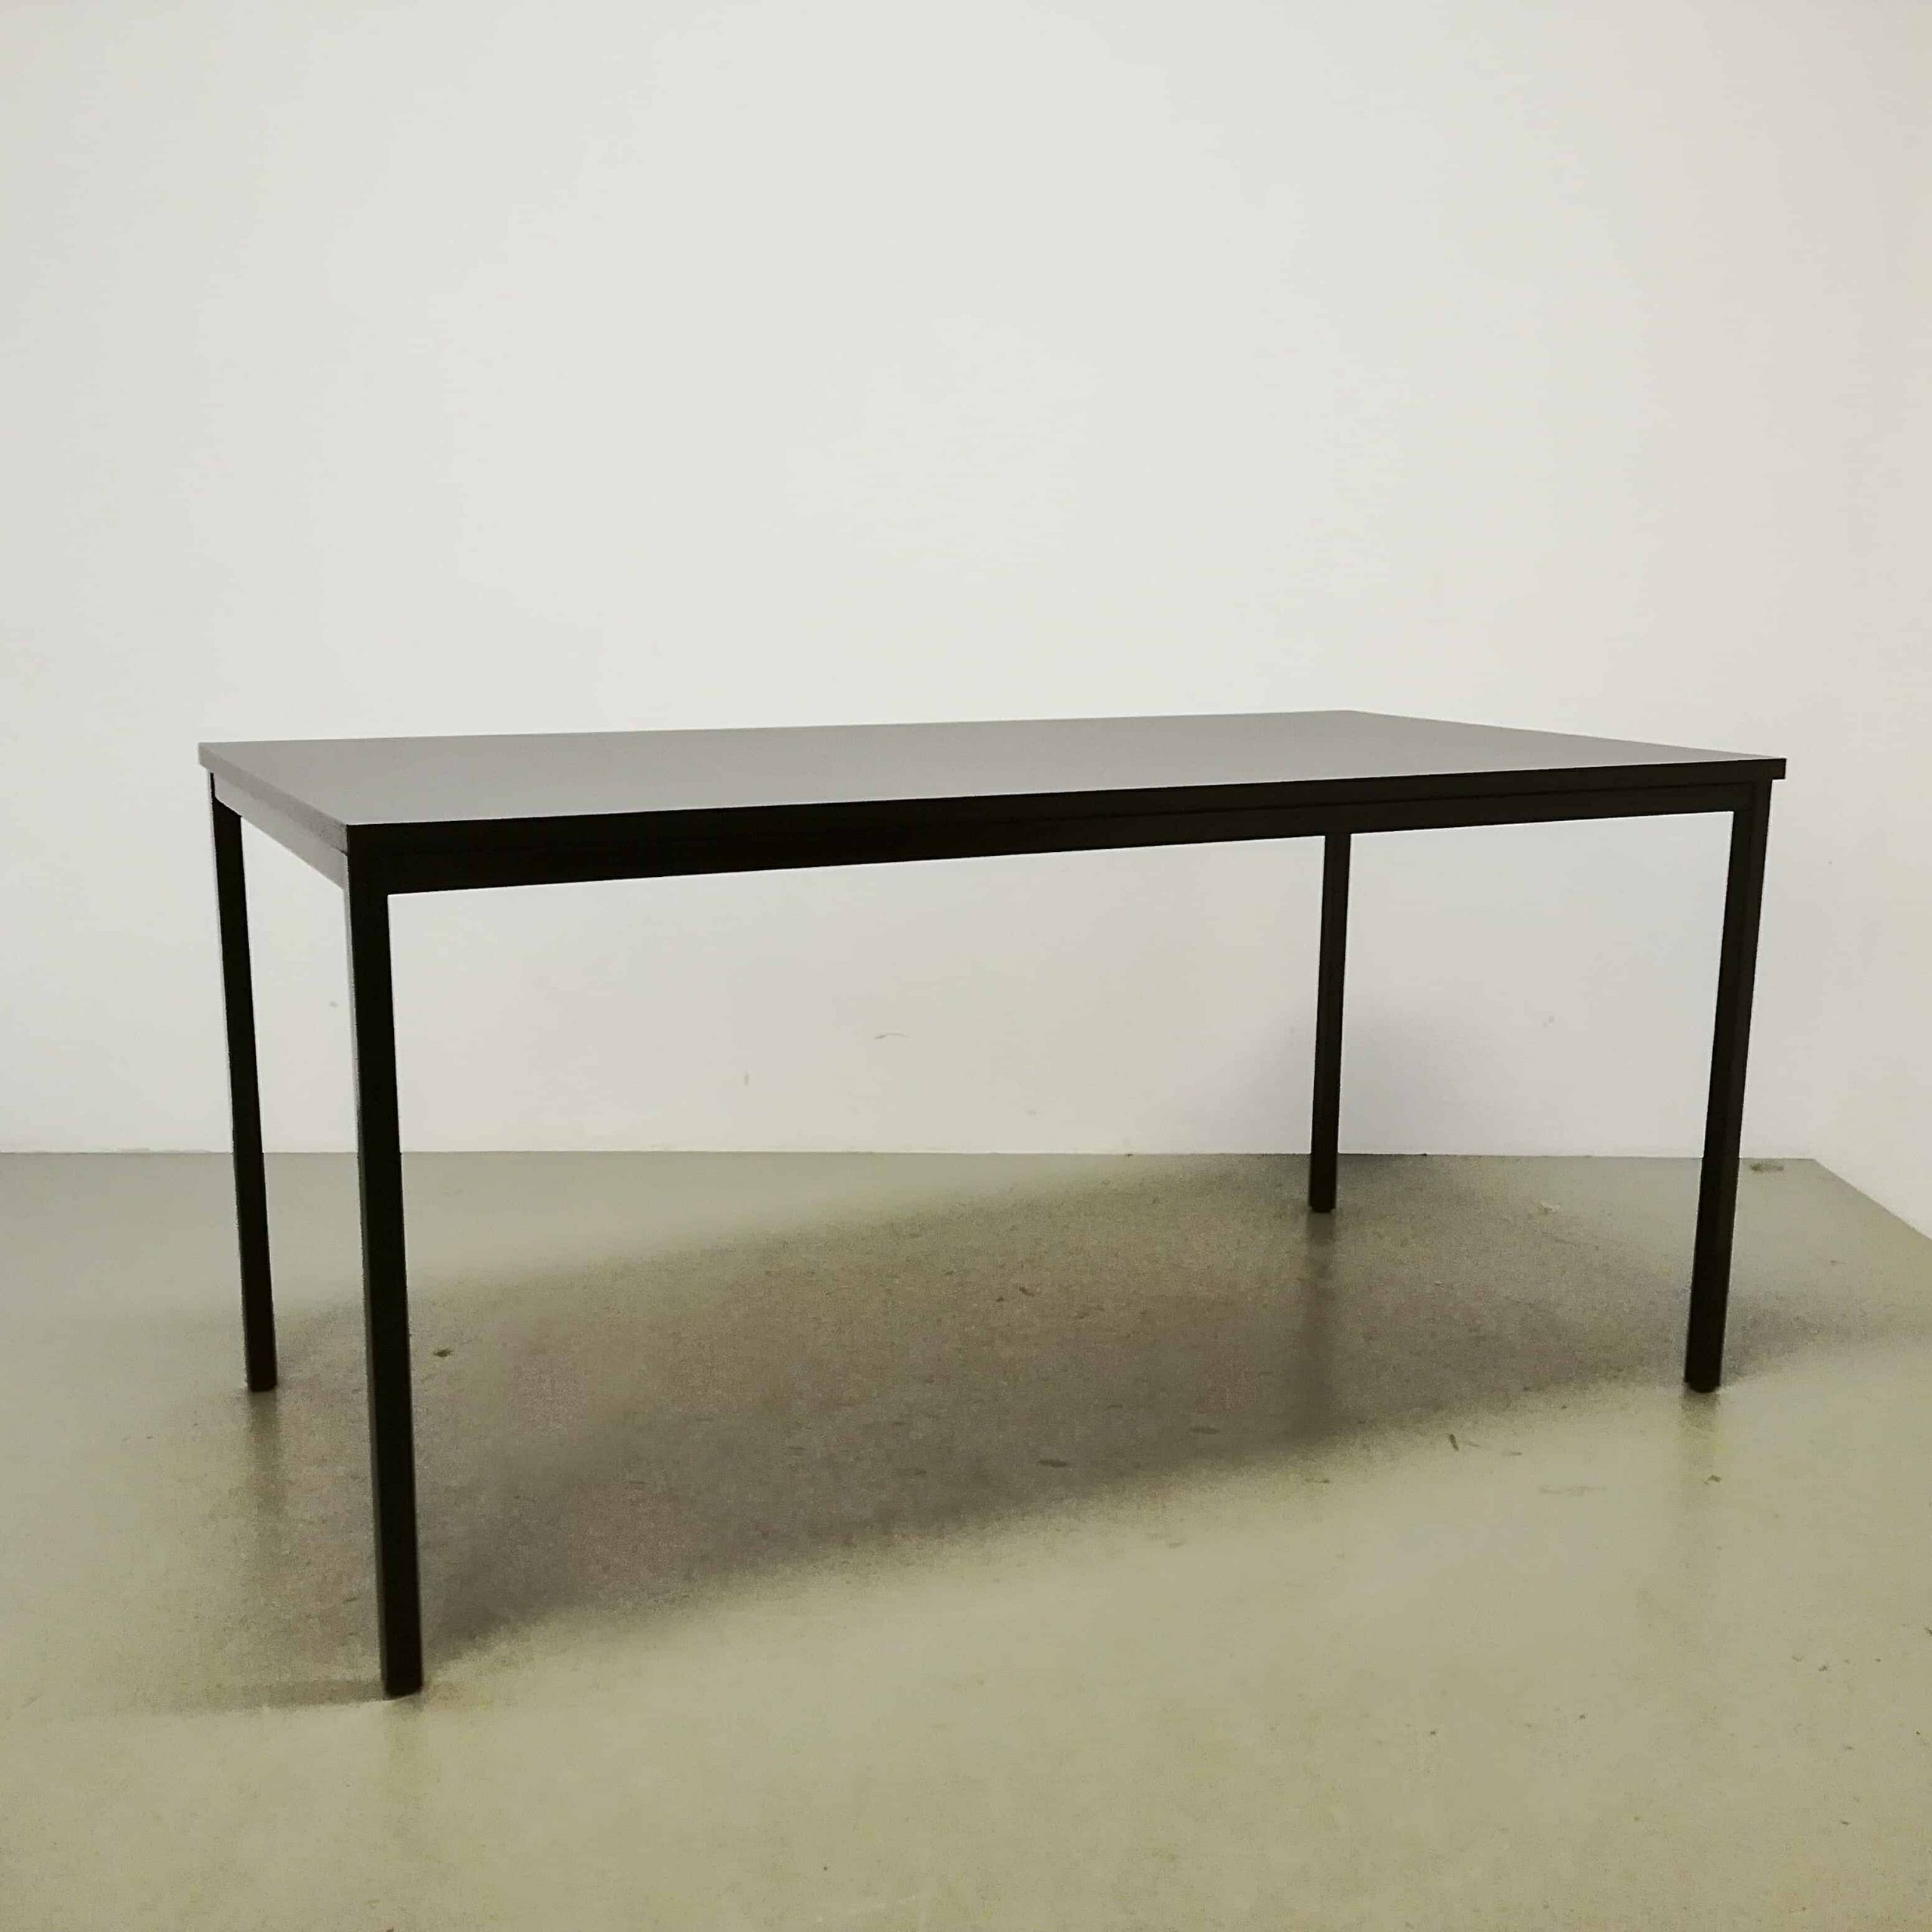 table-table-a-manger-bureau-table-de-travail-noir-metal-bois-placage-serré-simple